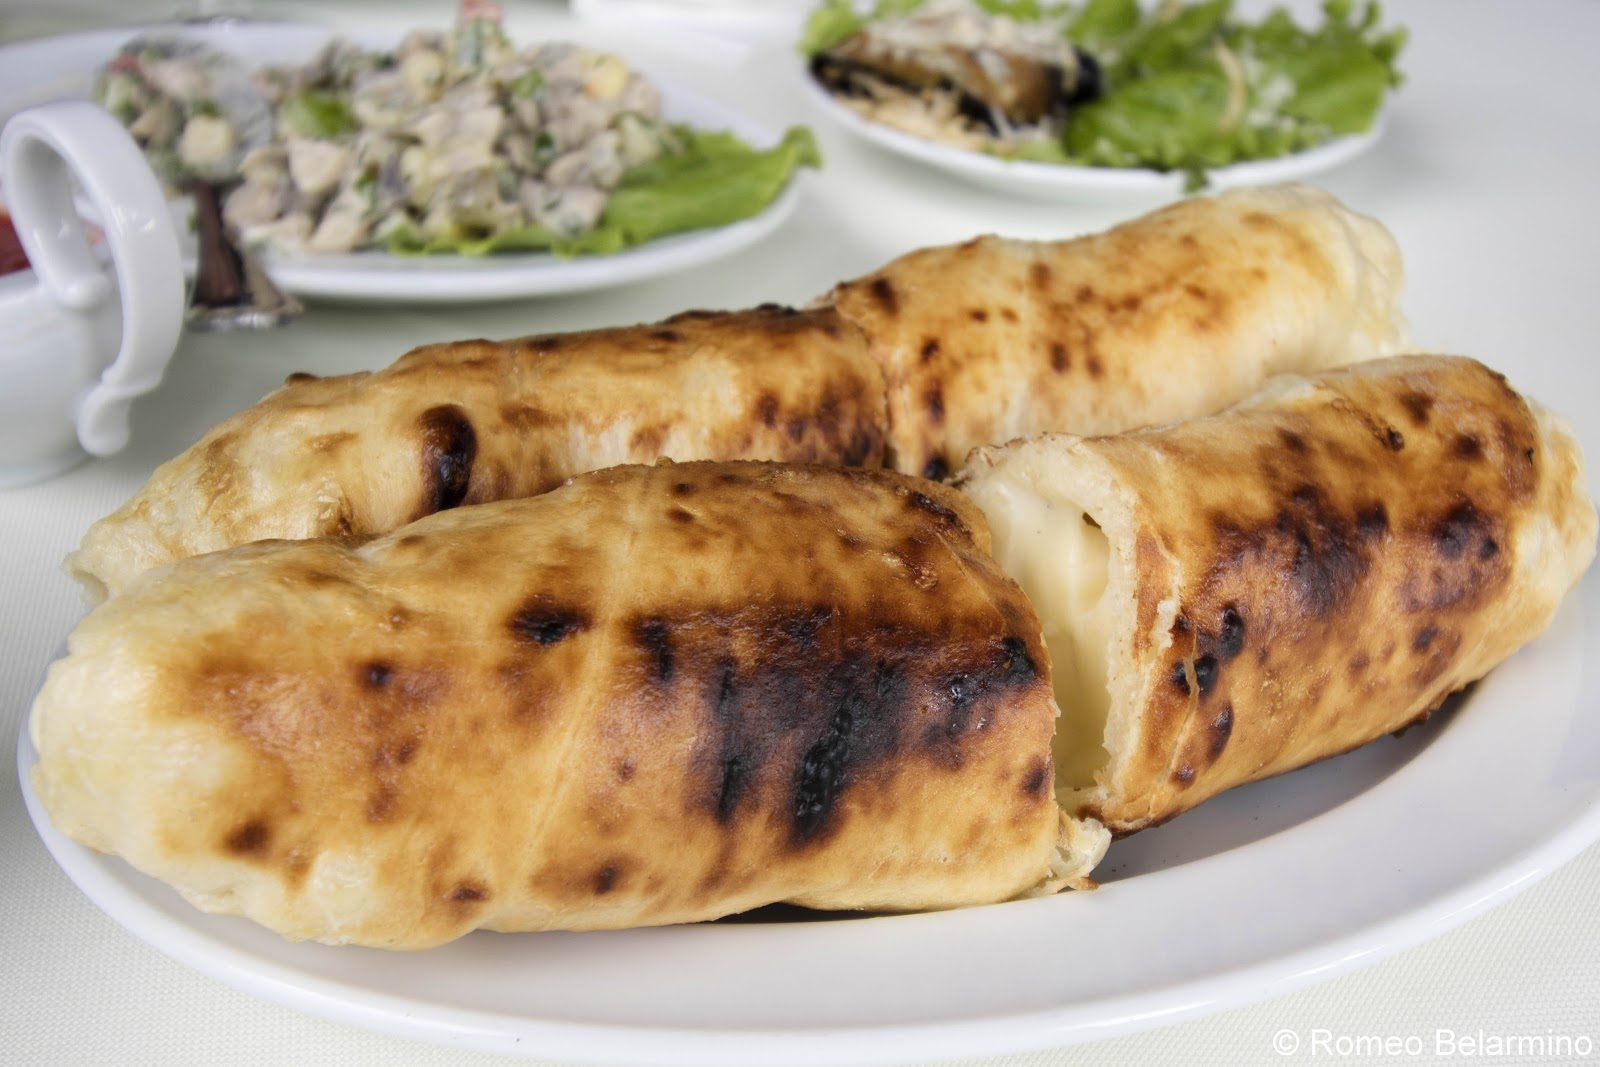 n cuisine traditional foods to try in travel  khachapuri shampurze ხაჭაპური შამფურზე n cuisine traditional foods